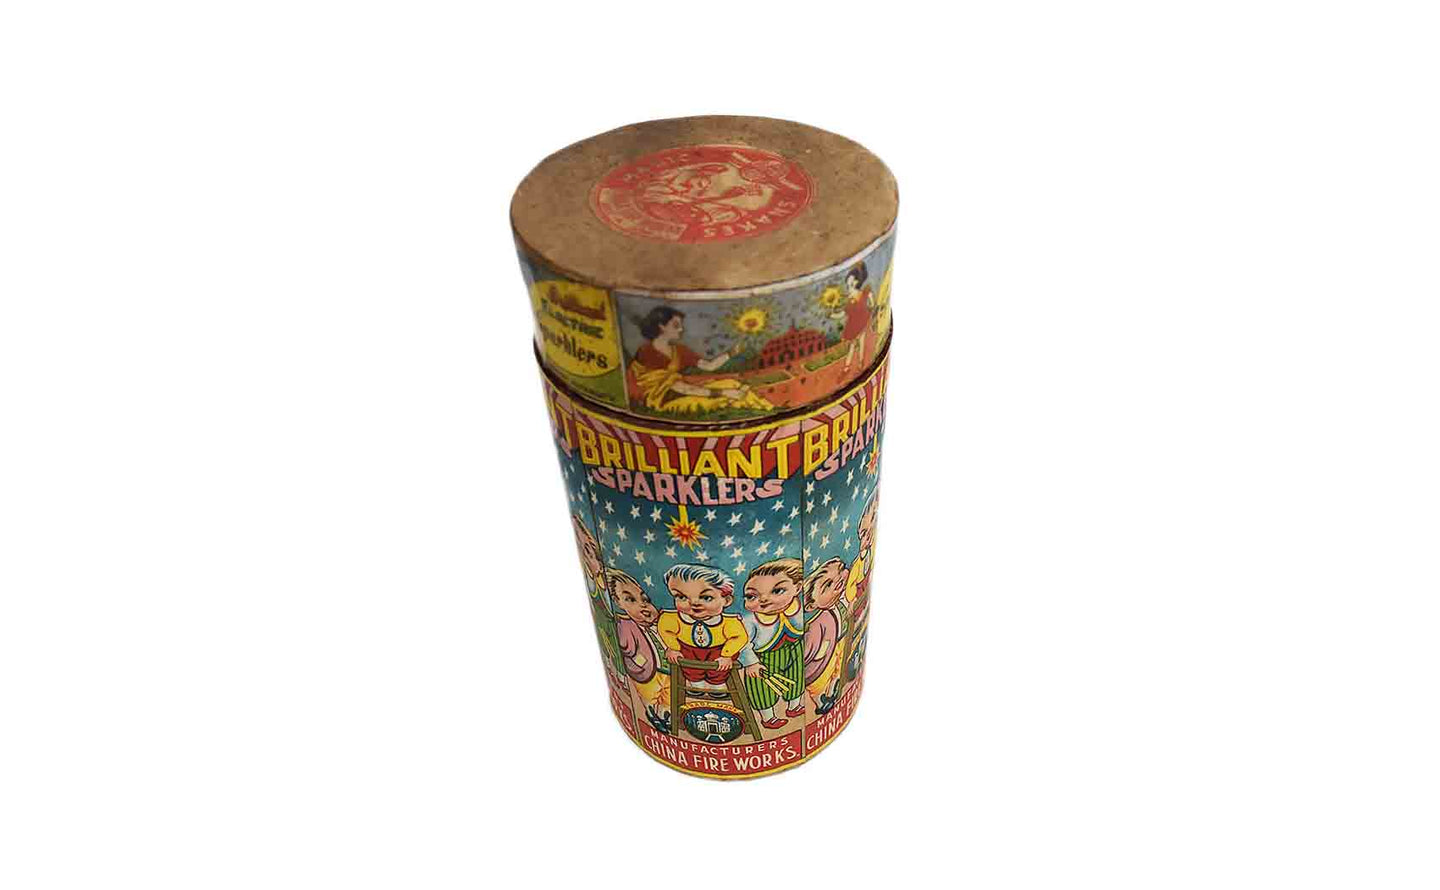 Brilliant Sparklers Tube from India